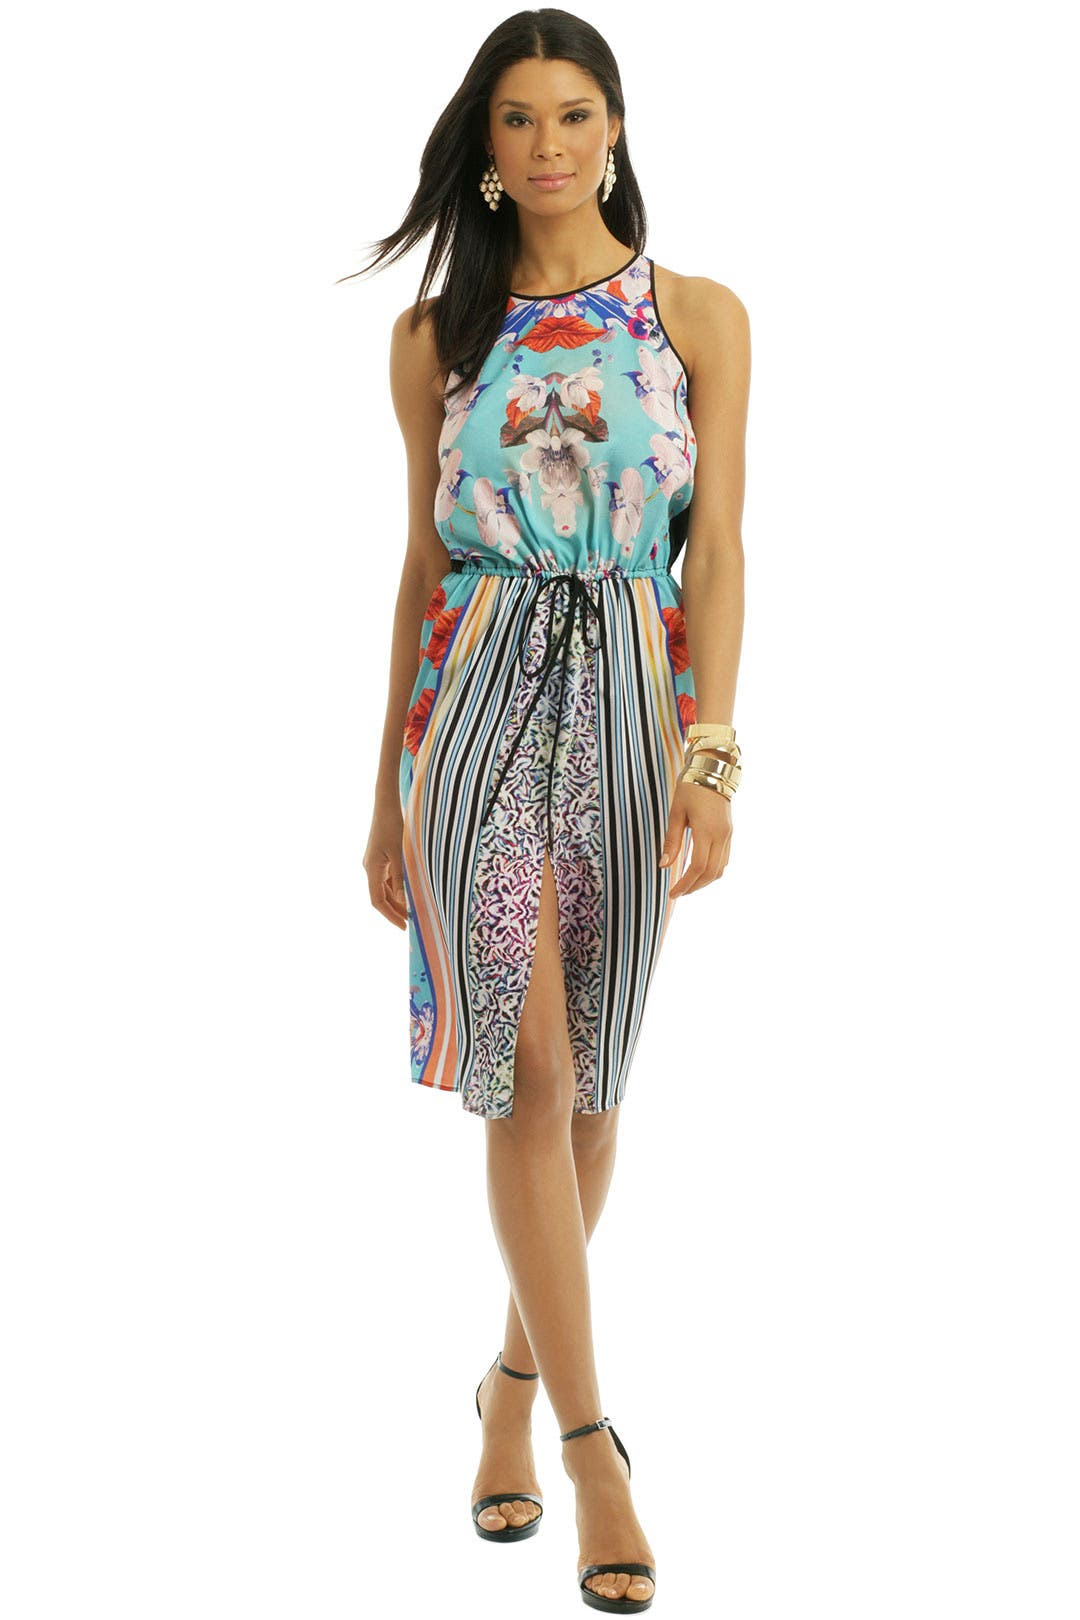 Prism Orchid Dress by Clover Canyon